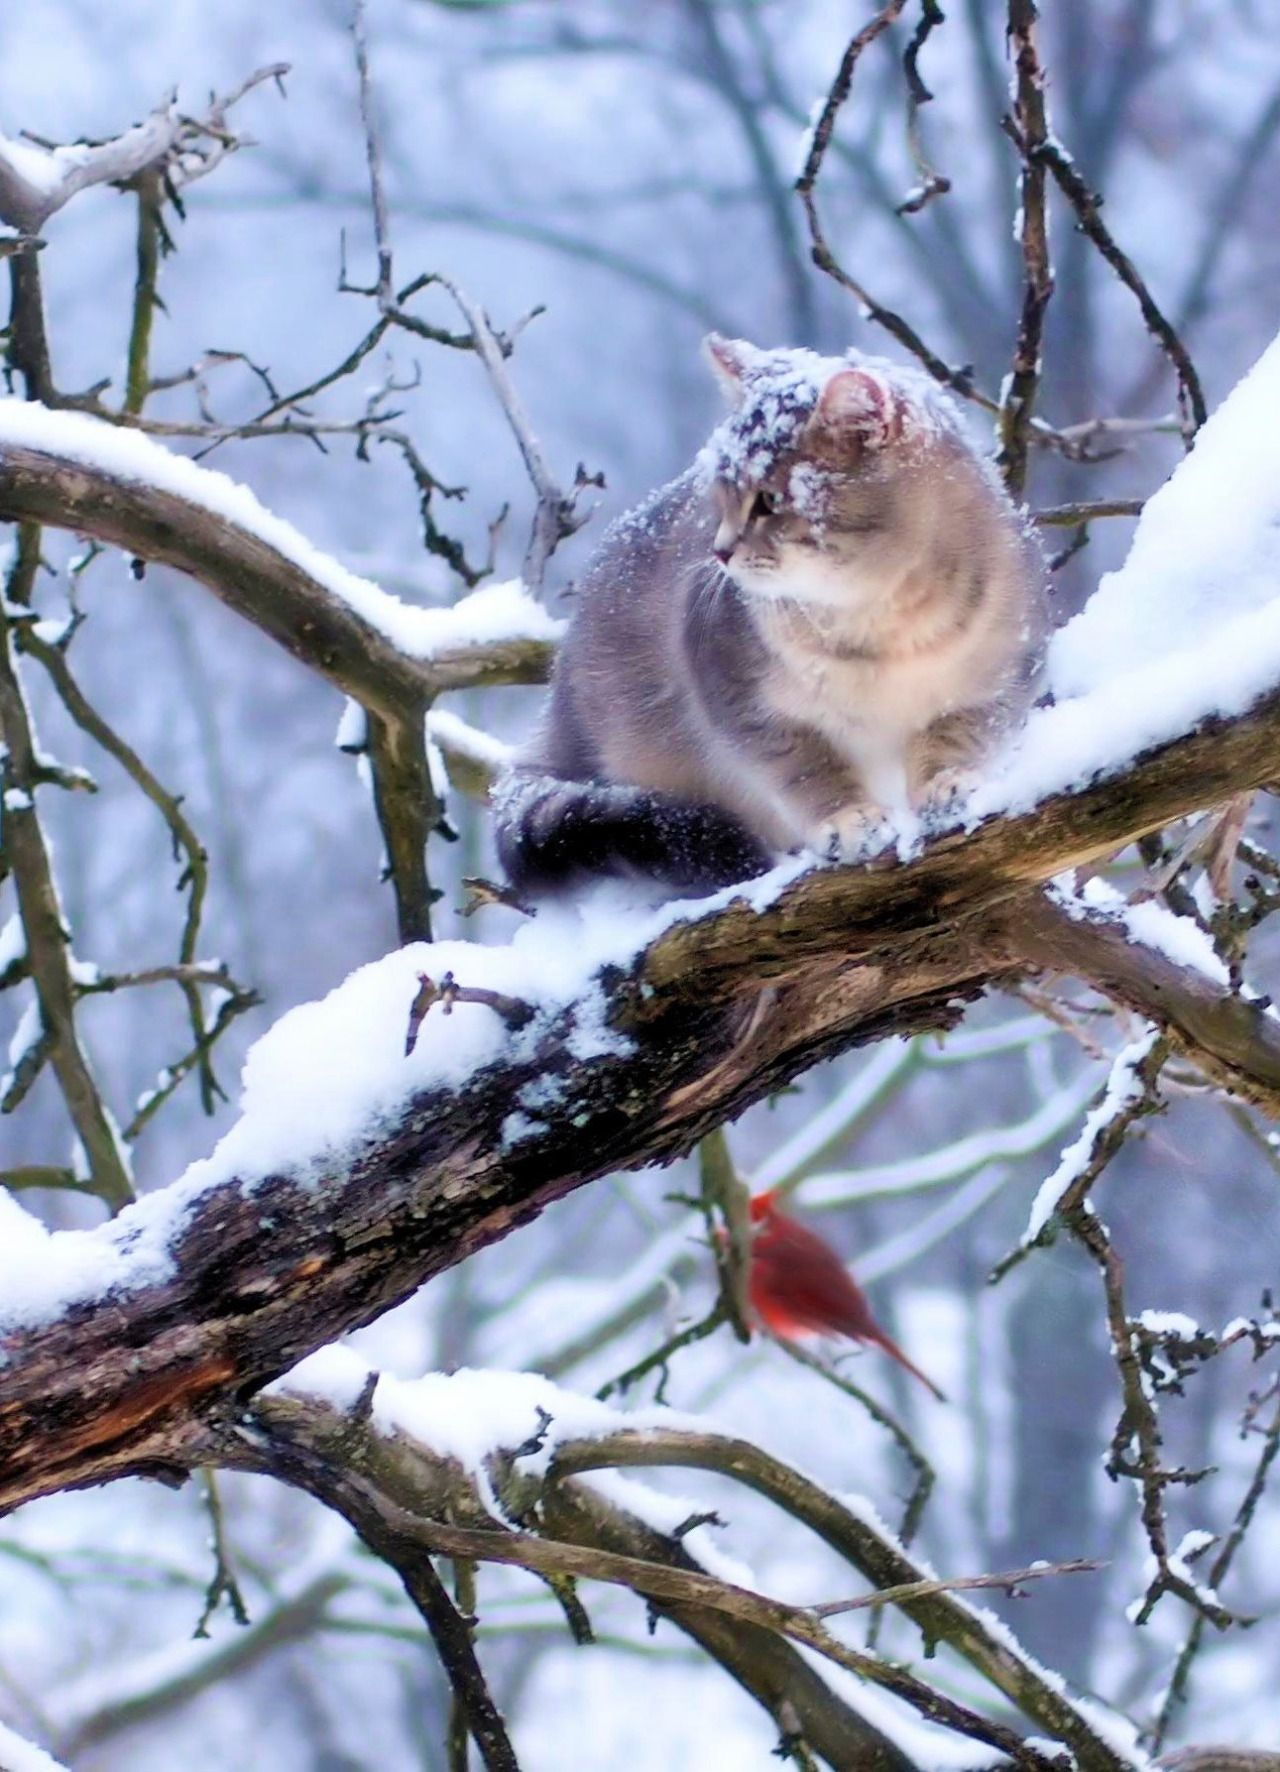 The Way A Crow Shook Down On Me The Dust Of Snow From A Hemlock Tree Has Given My Heart A Change Pretty Cats Cats Crazy Cats